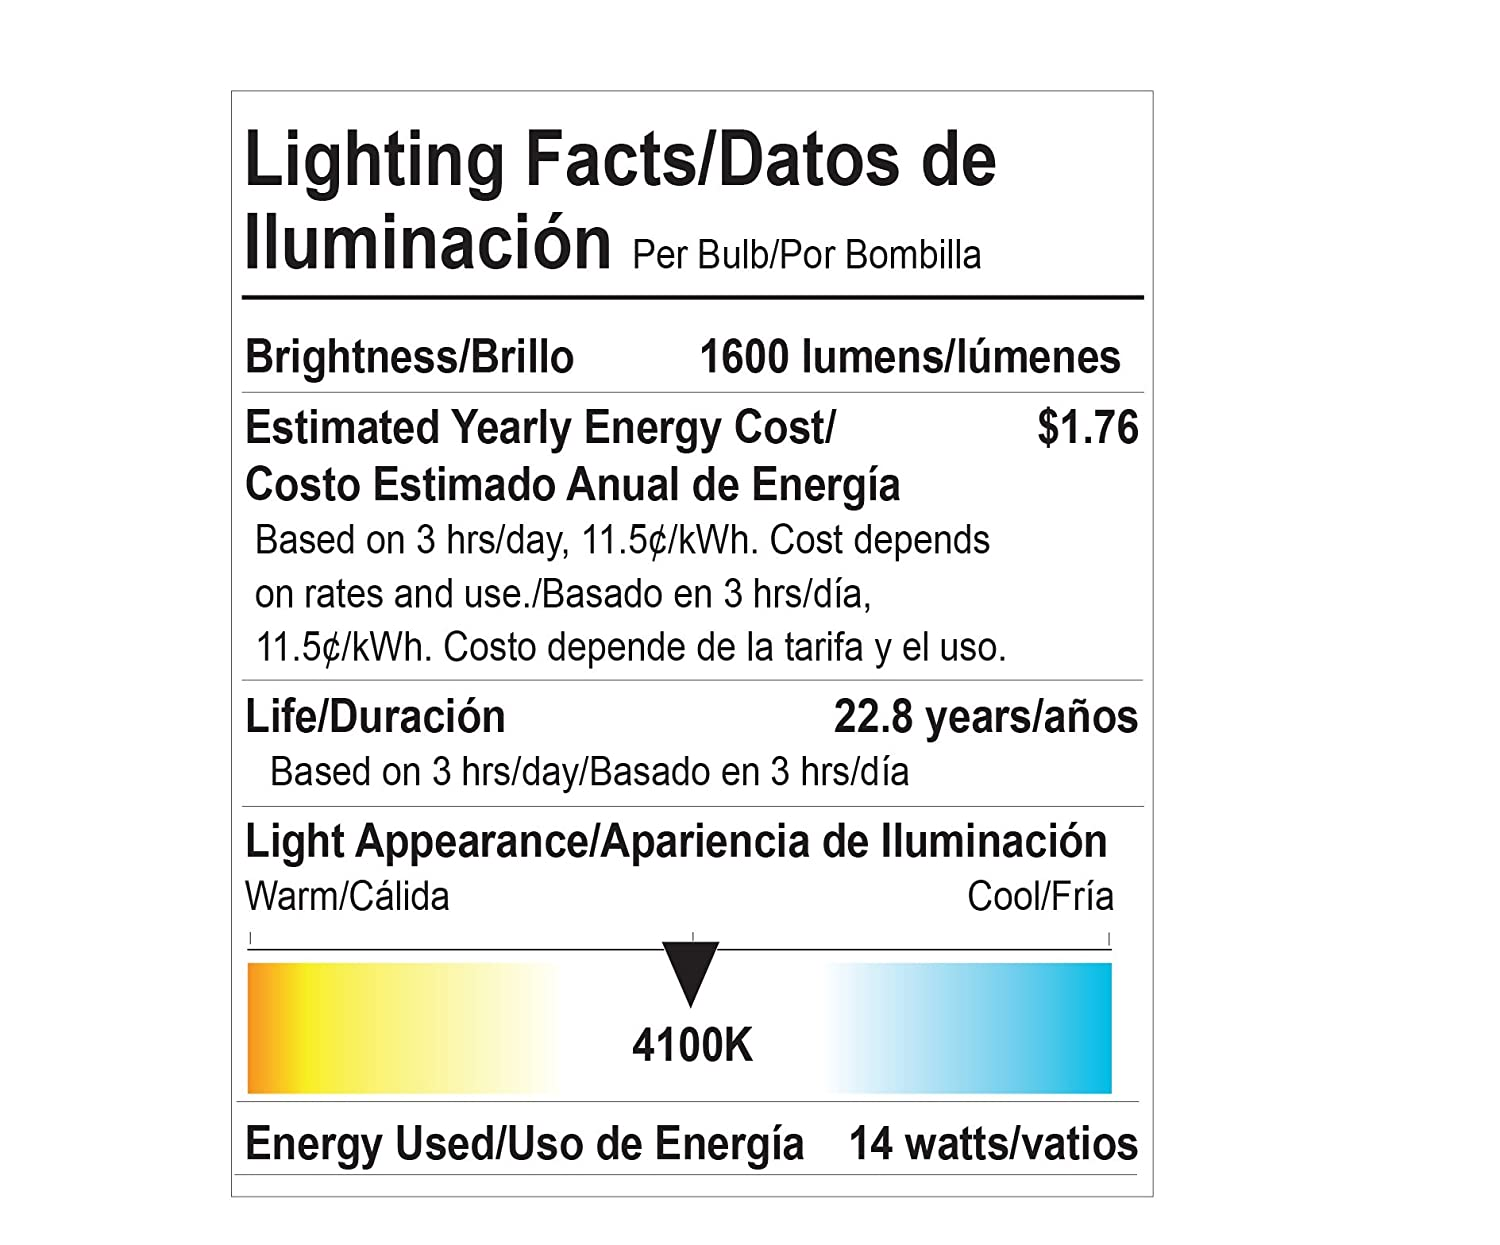 Goodlite G-83440 Omni Directional 300 degree 14W 100W Equivalent A19 3000K Dimmable LED Light Bulb, Warm White - - Amazon.com